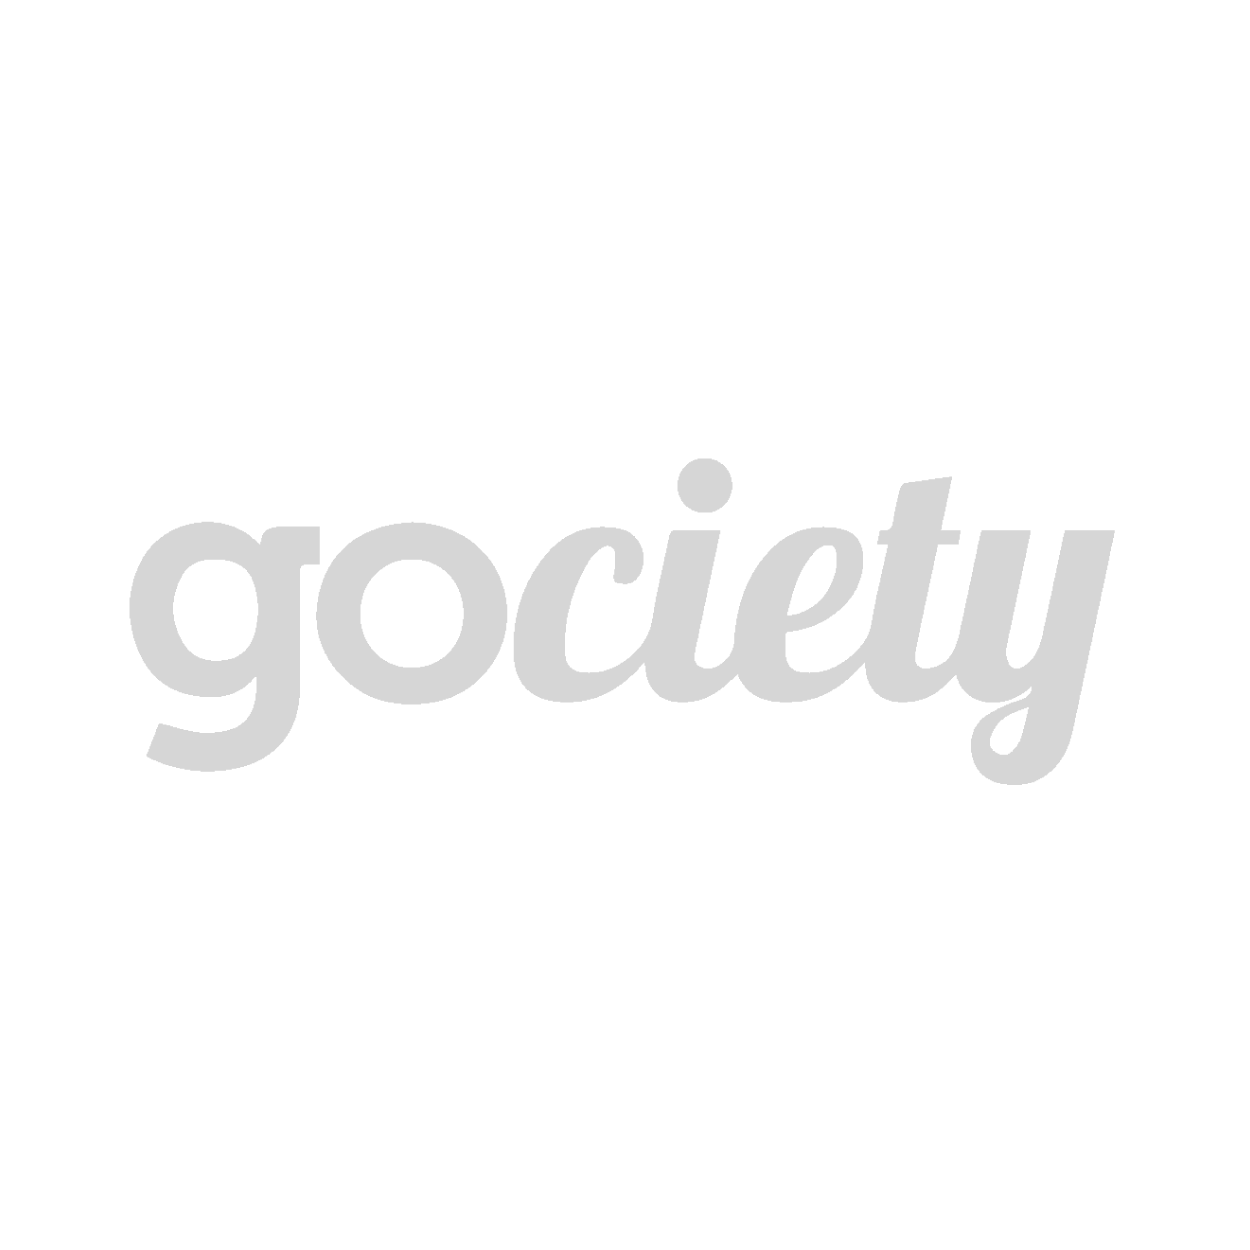 Grayscale_Client_Logo_Geocity-01.png